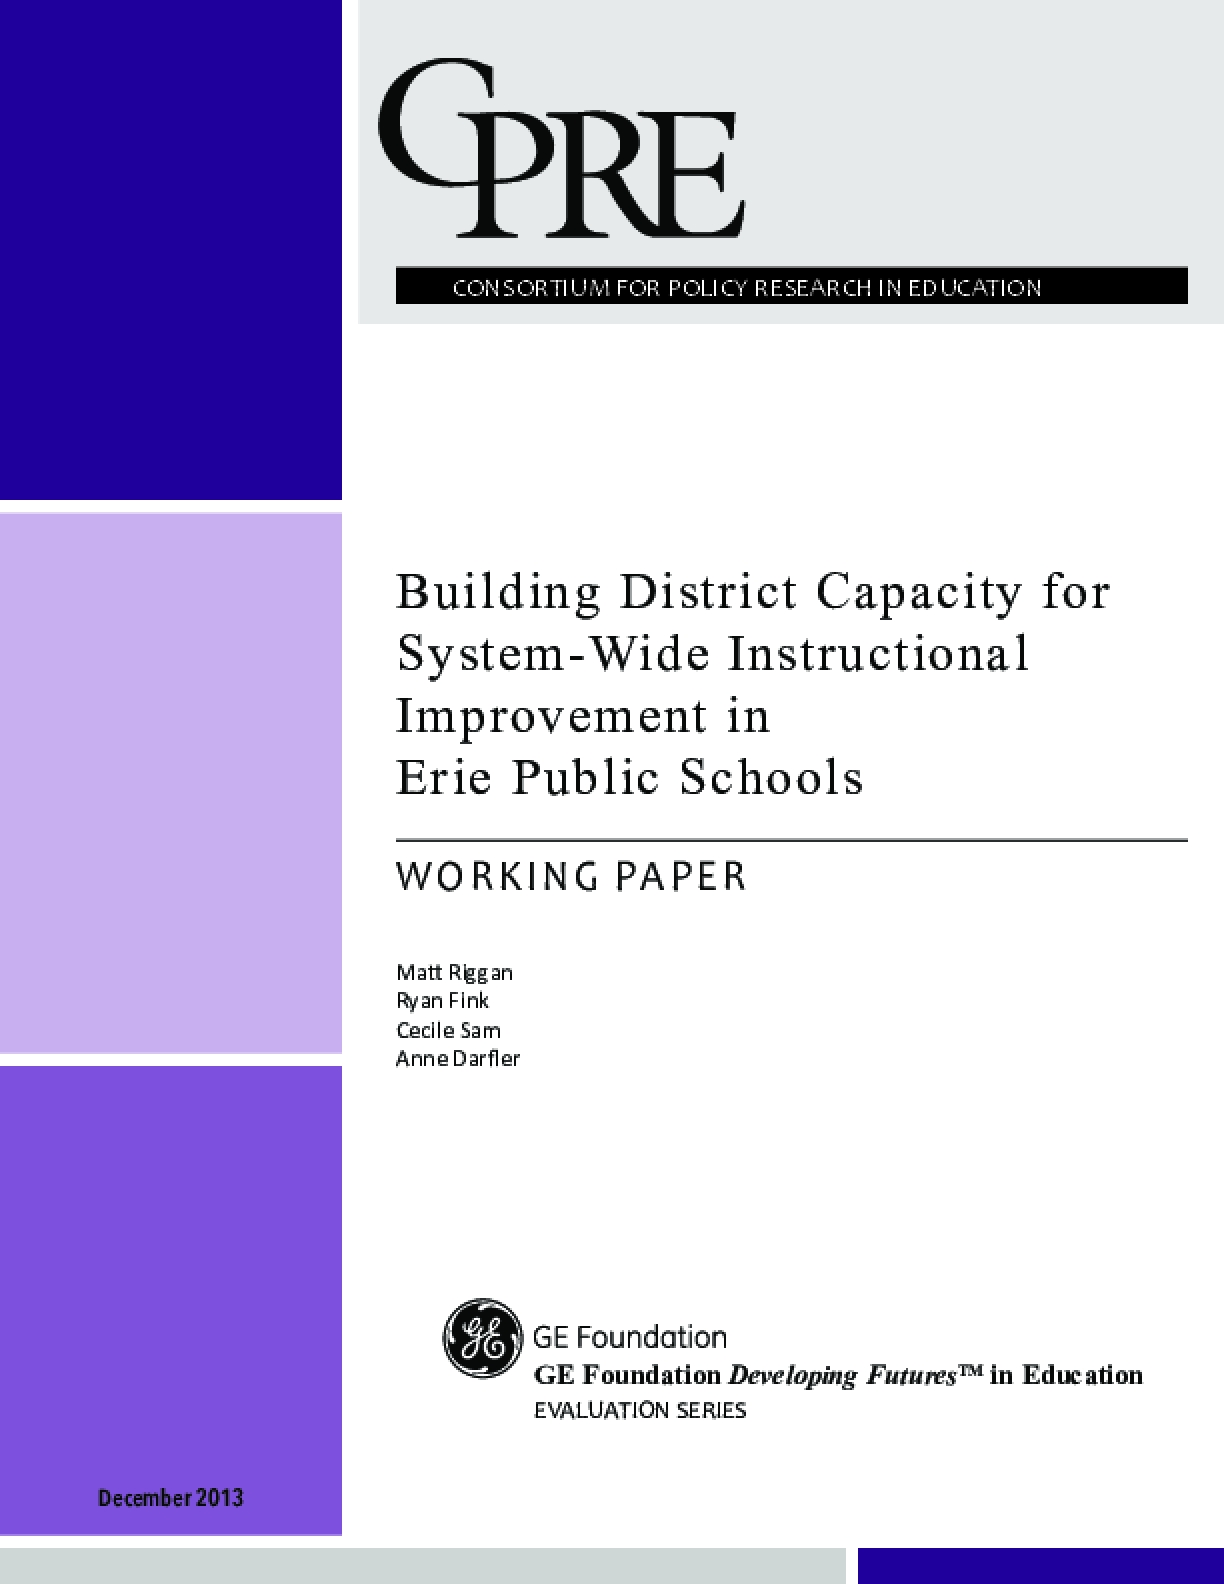 Building District Capacity for System-Wide Instructional Improvement in Erie Public Schools